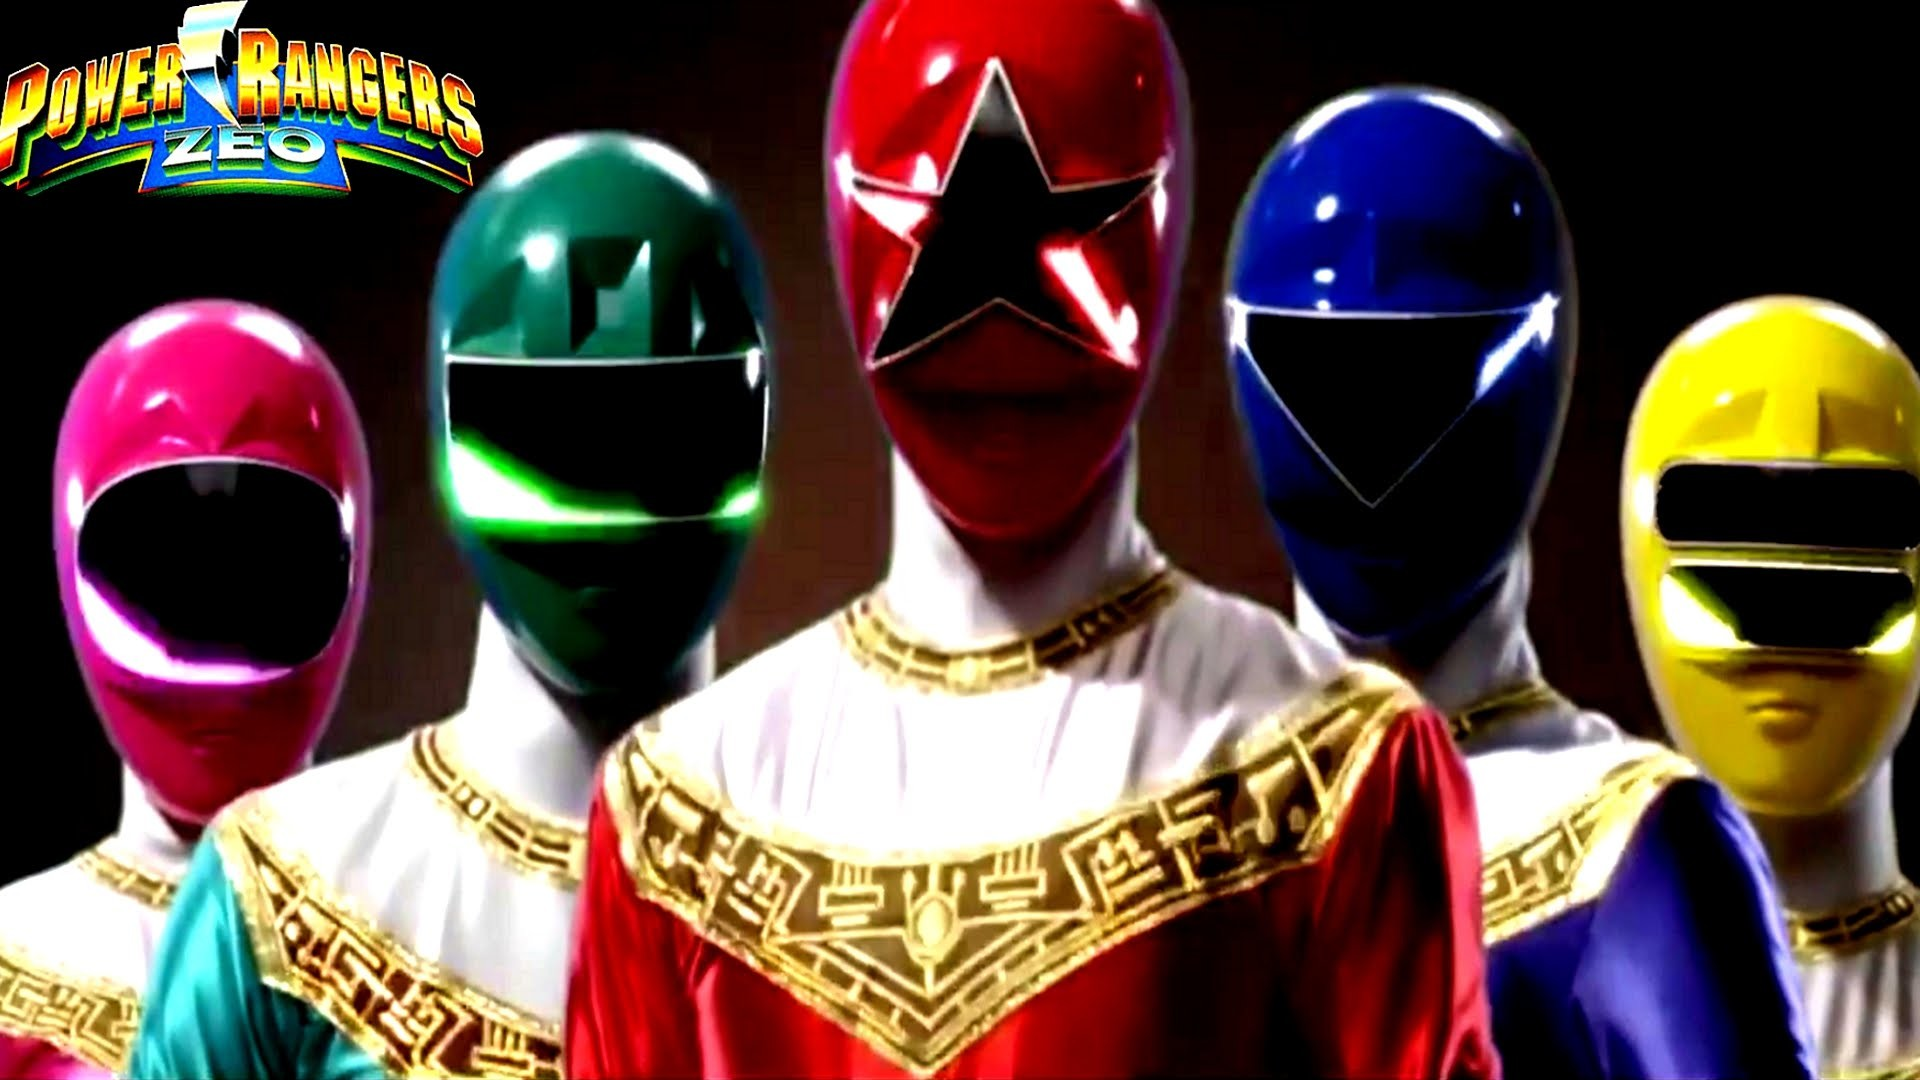 Power Rangers Jungle Fury Wallpaper 64 Images